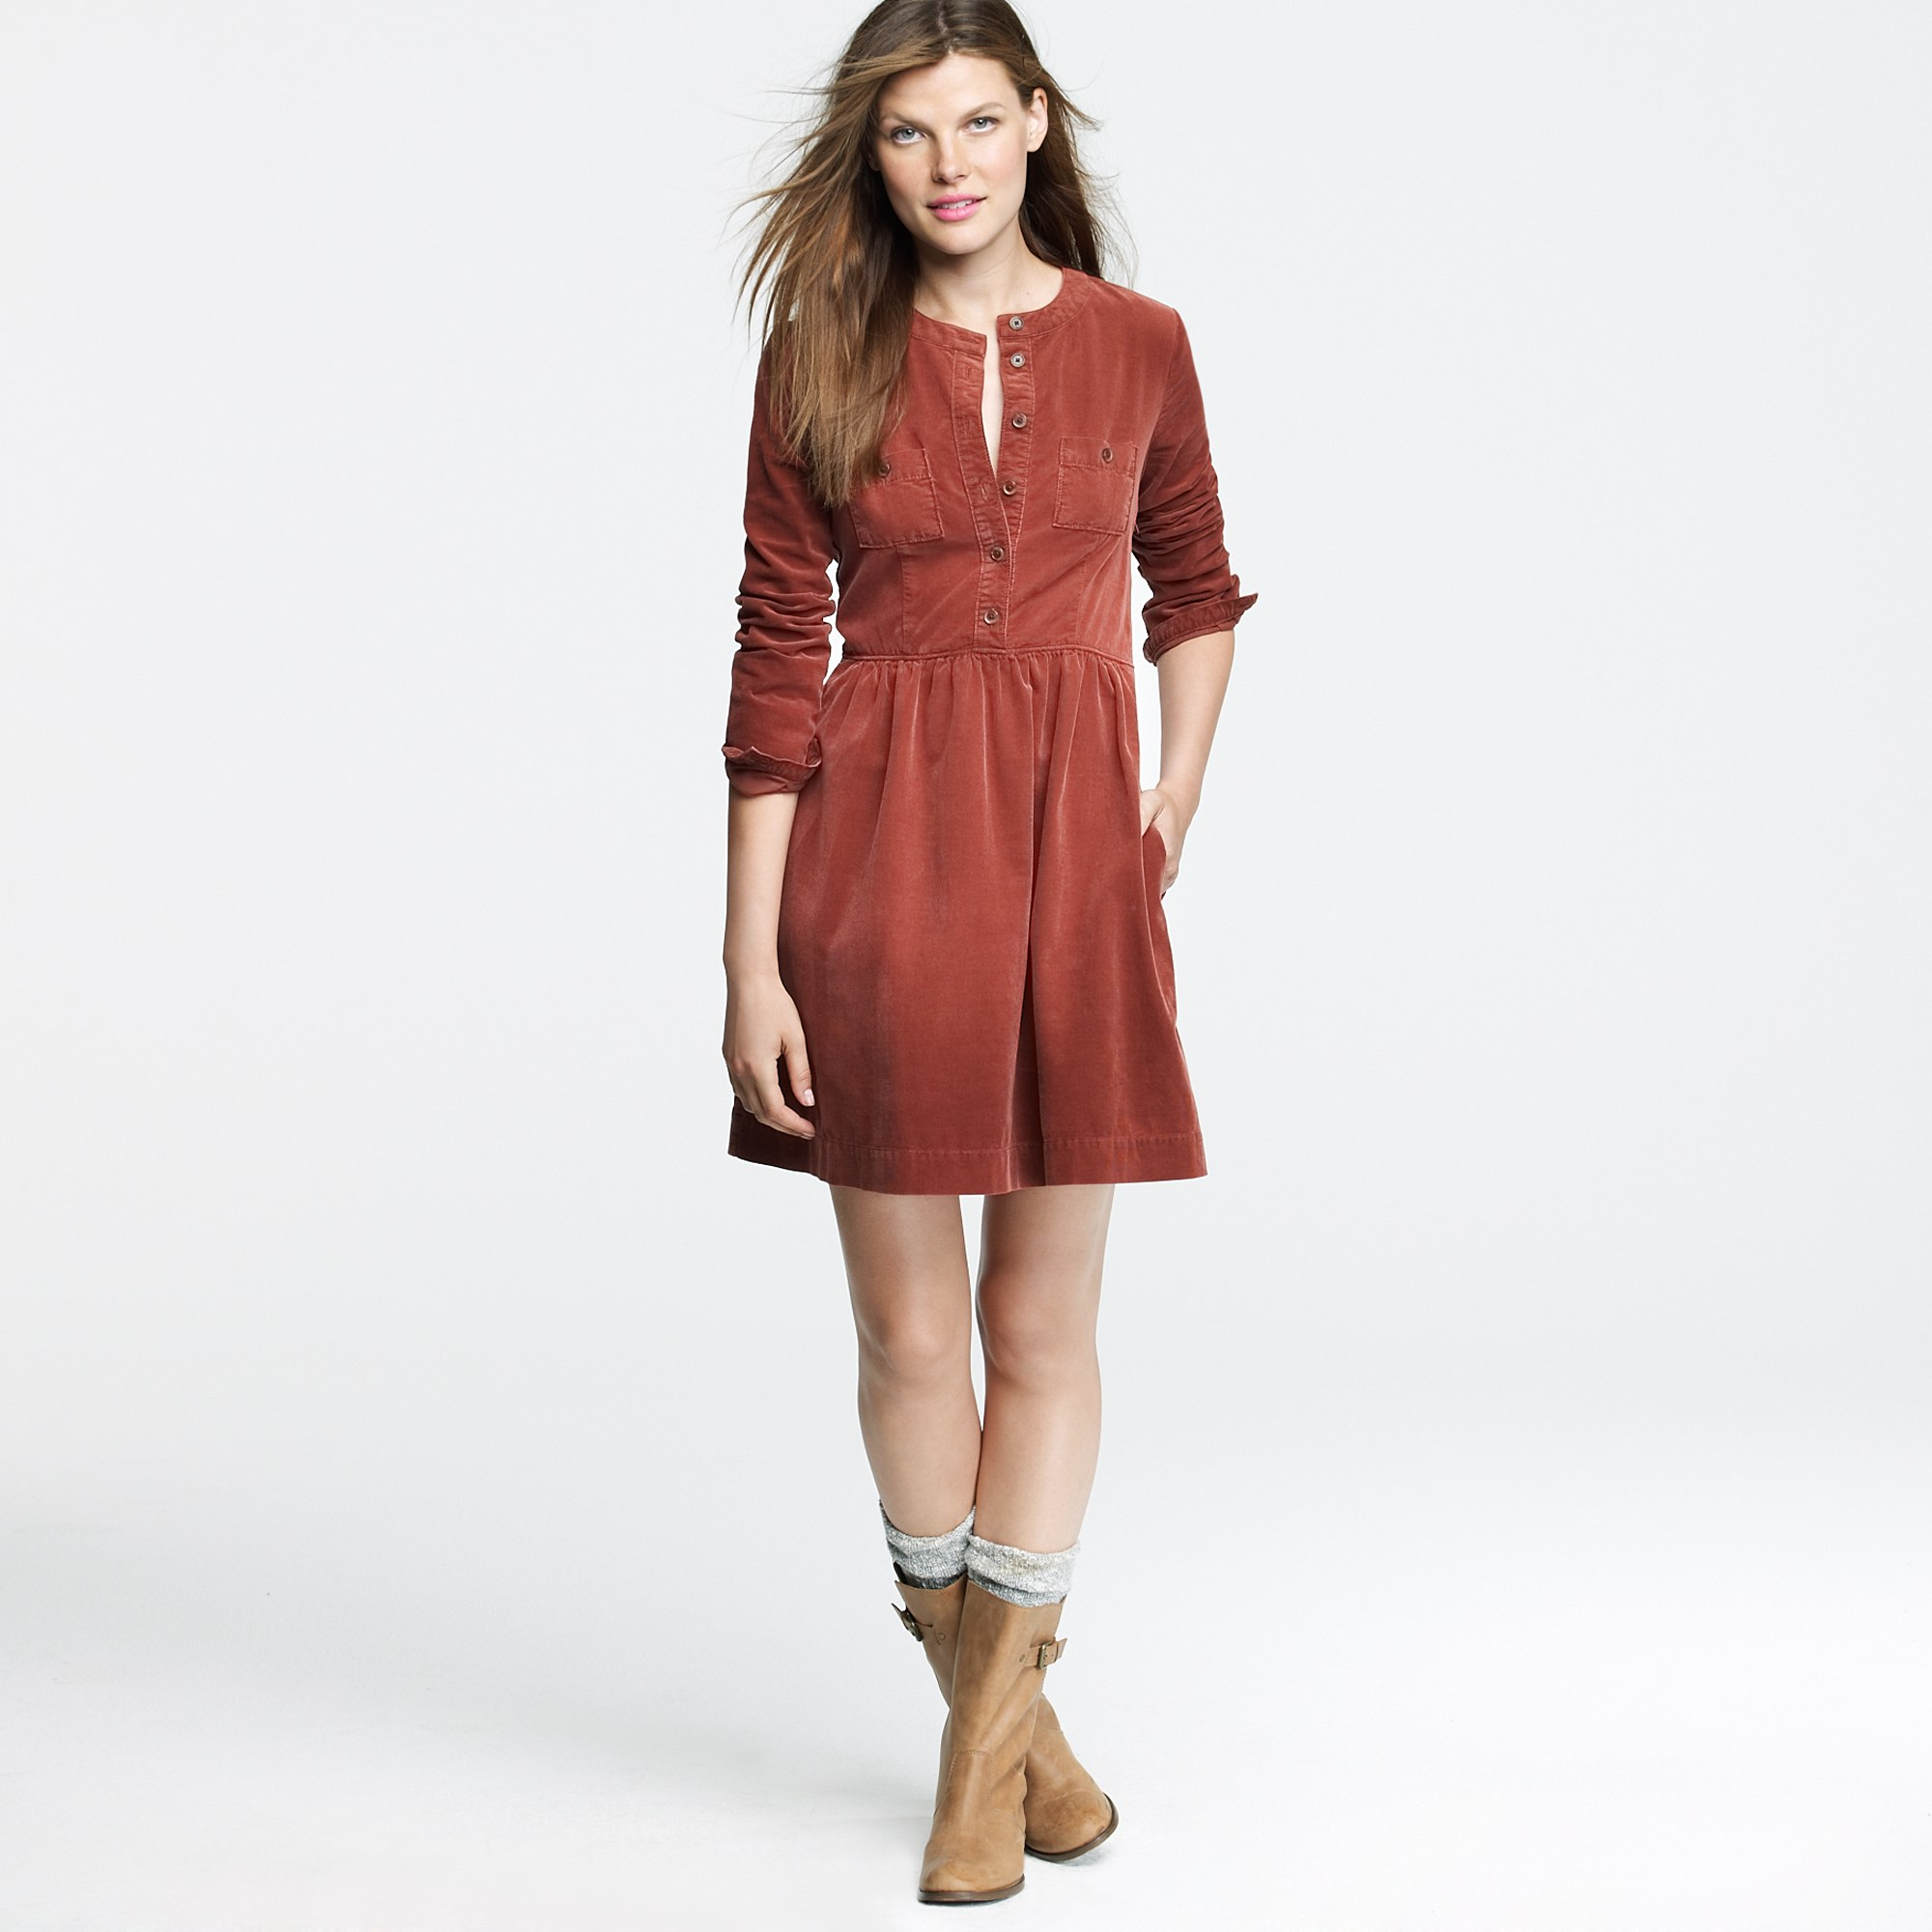 Shop Urban Outfitters for the perfect casual dresses for any occasion. Whether you need something to wear to class, or to the beach we have the dress you need. Receive free shipping for purchases of $50 or more on US orders.